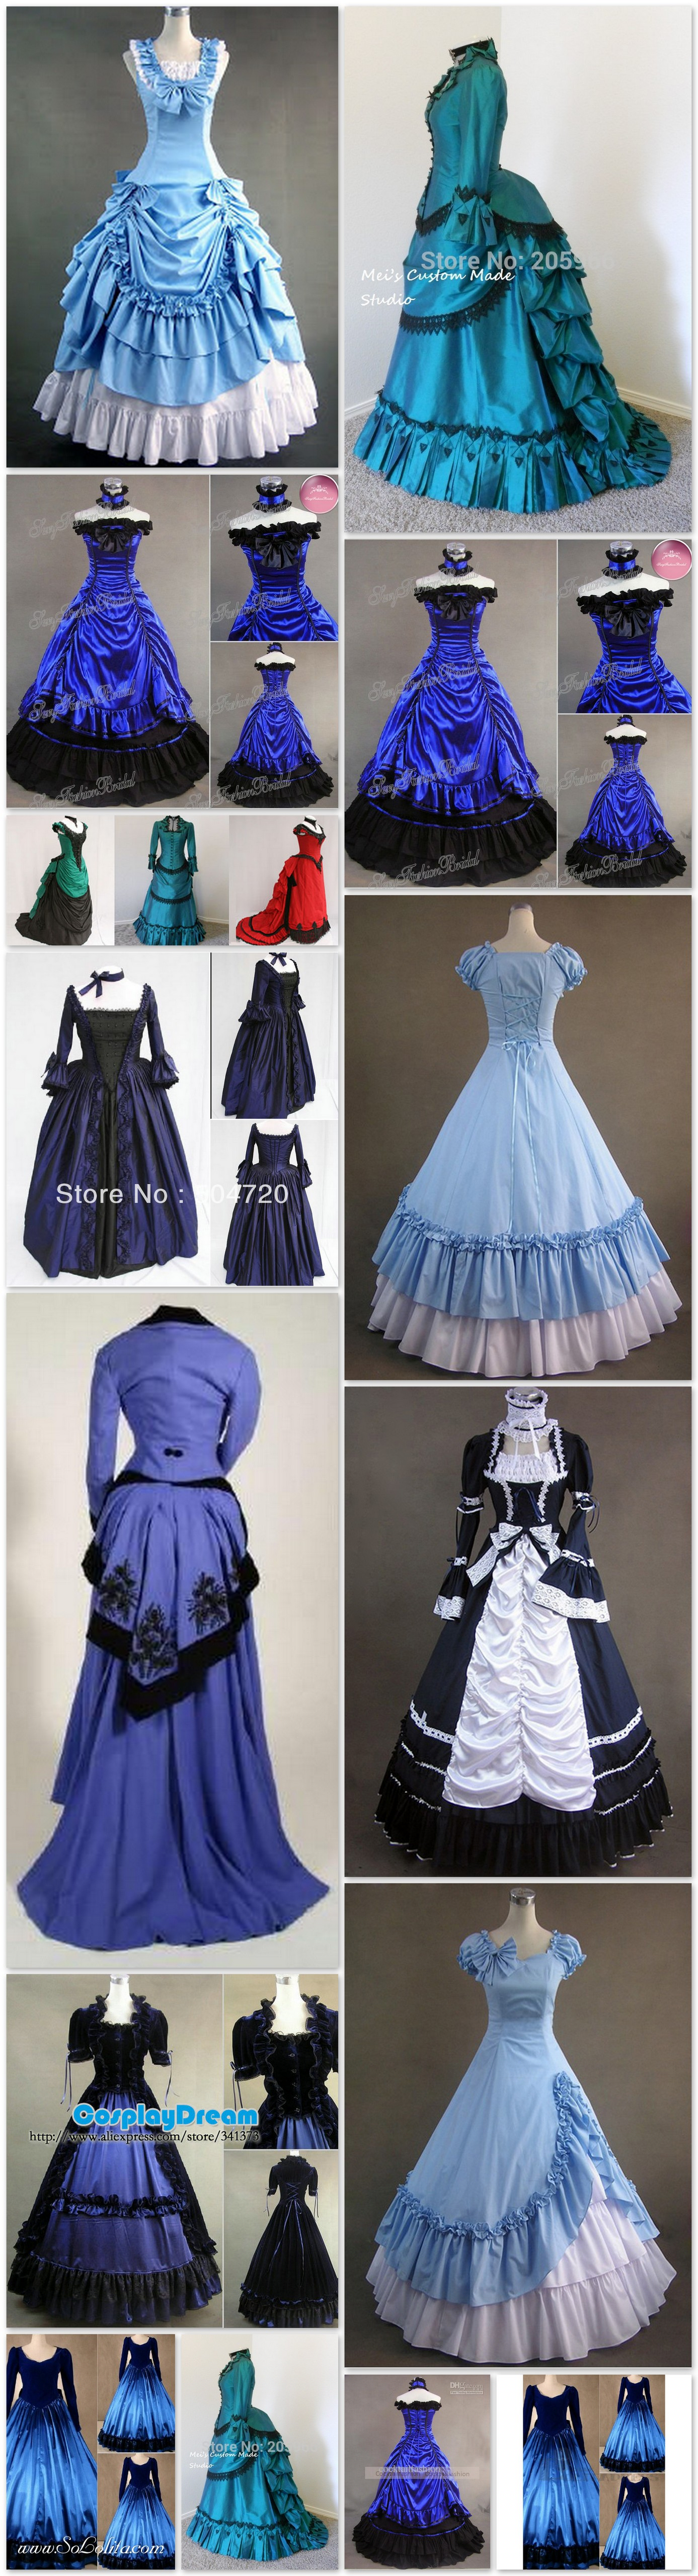 To acquire Victorian blue style dresses for sale photo picture trends